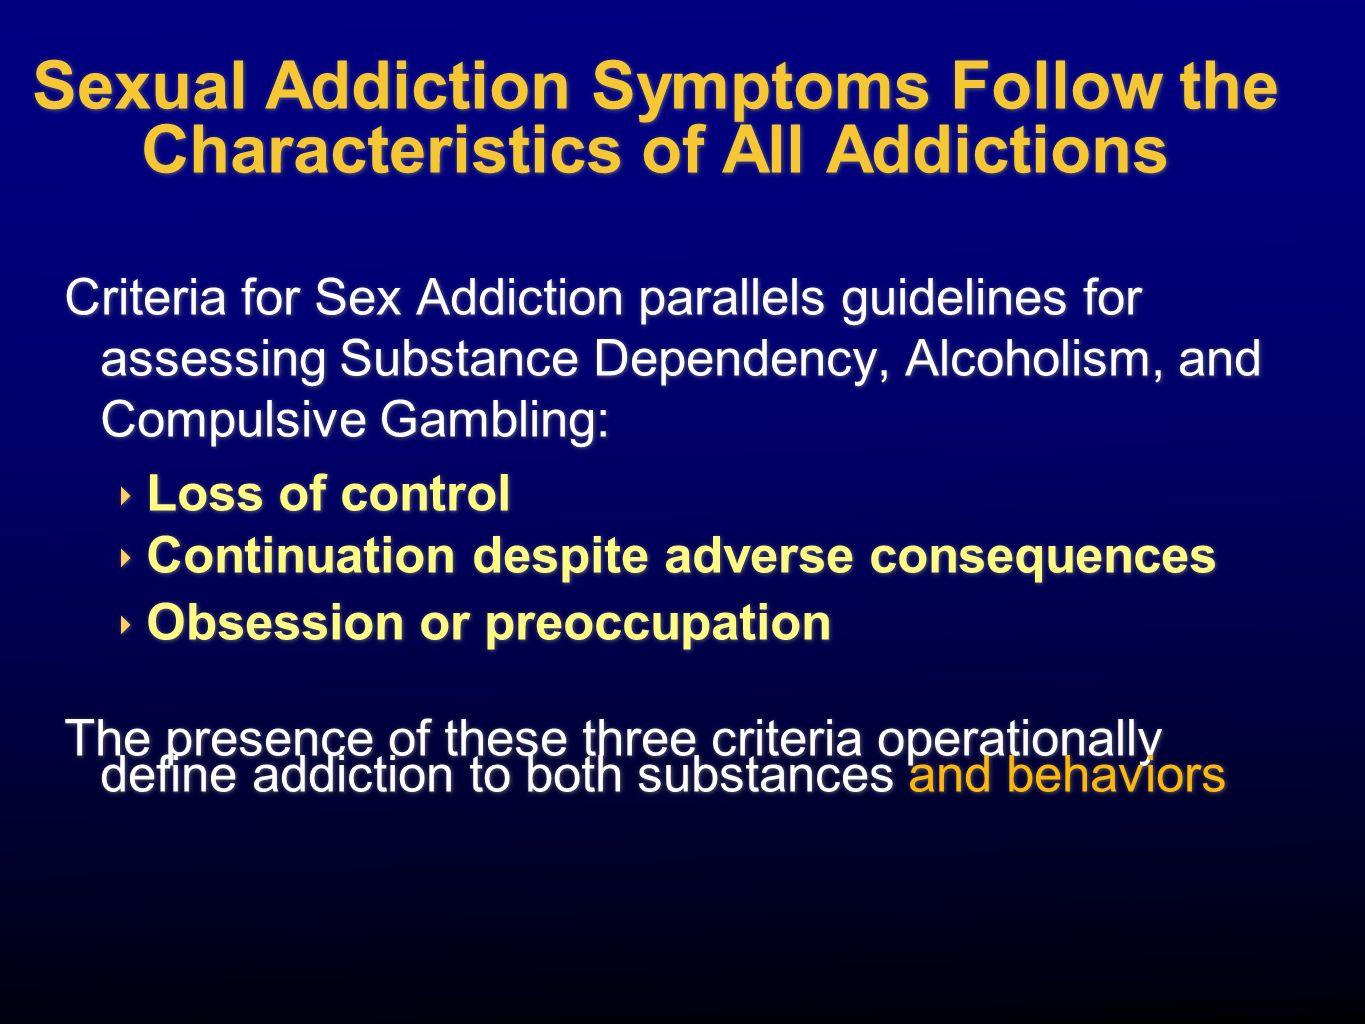 Sexual Addiction Symptoms Follow the Characteristics of All Addictions